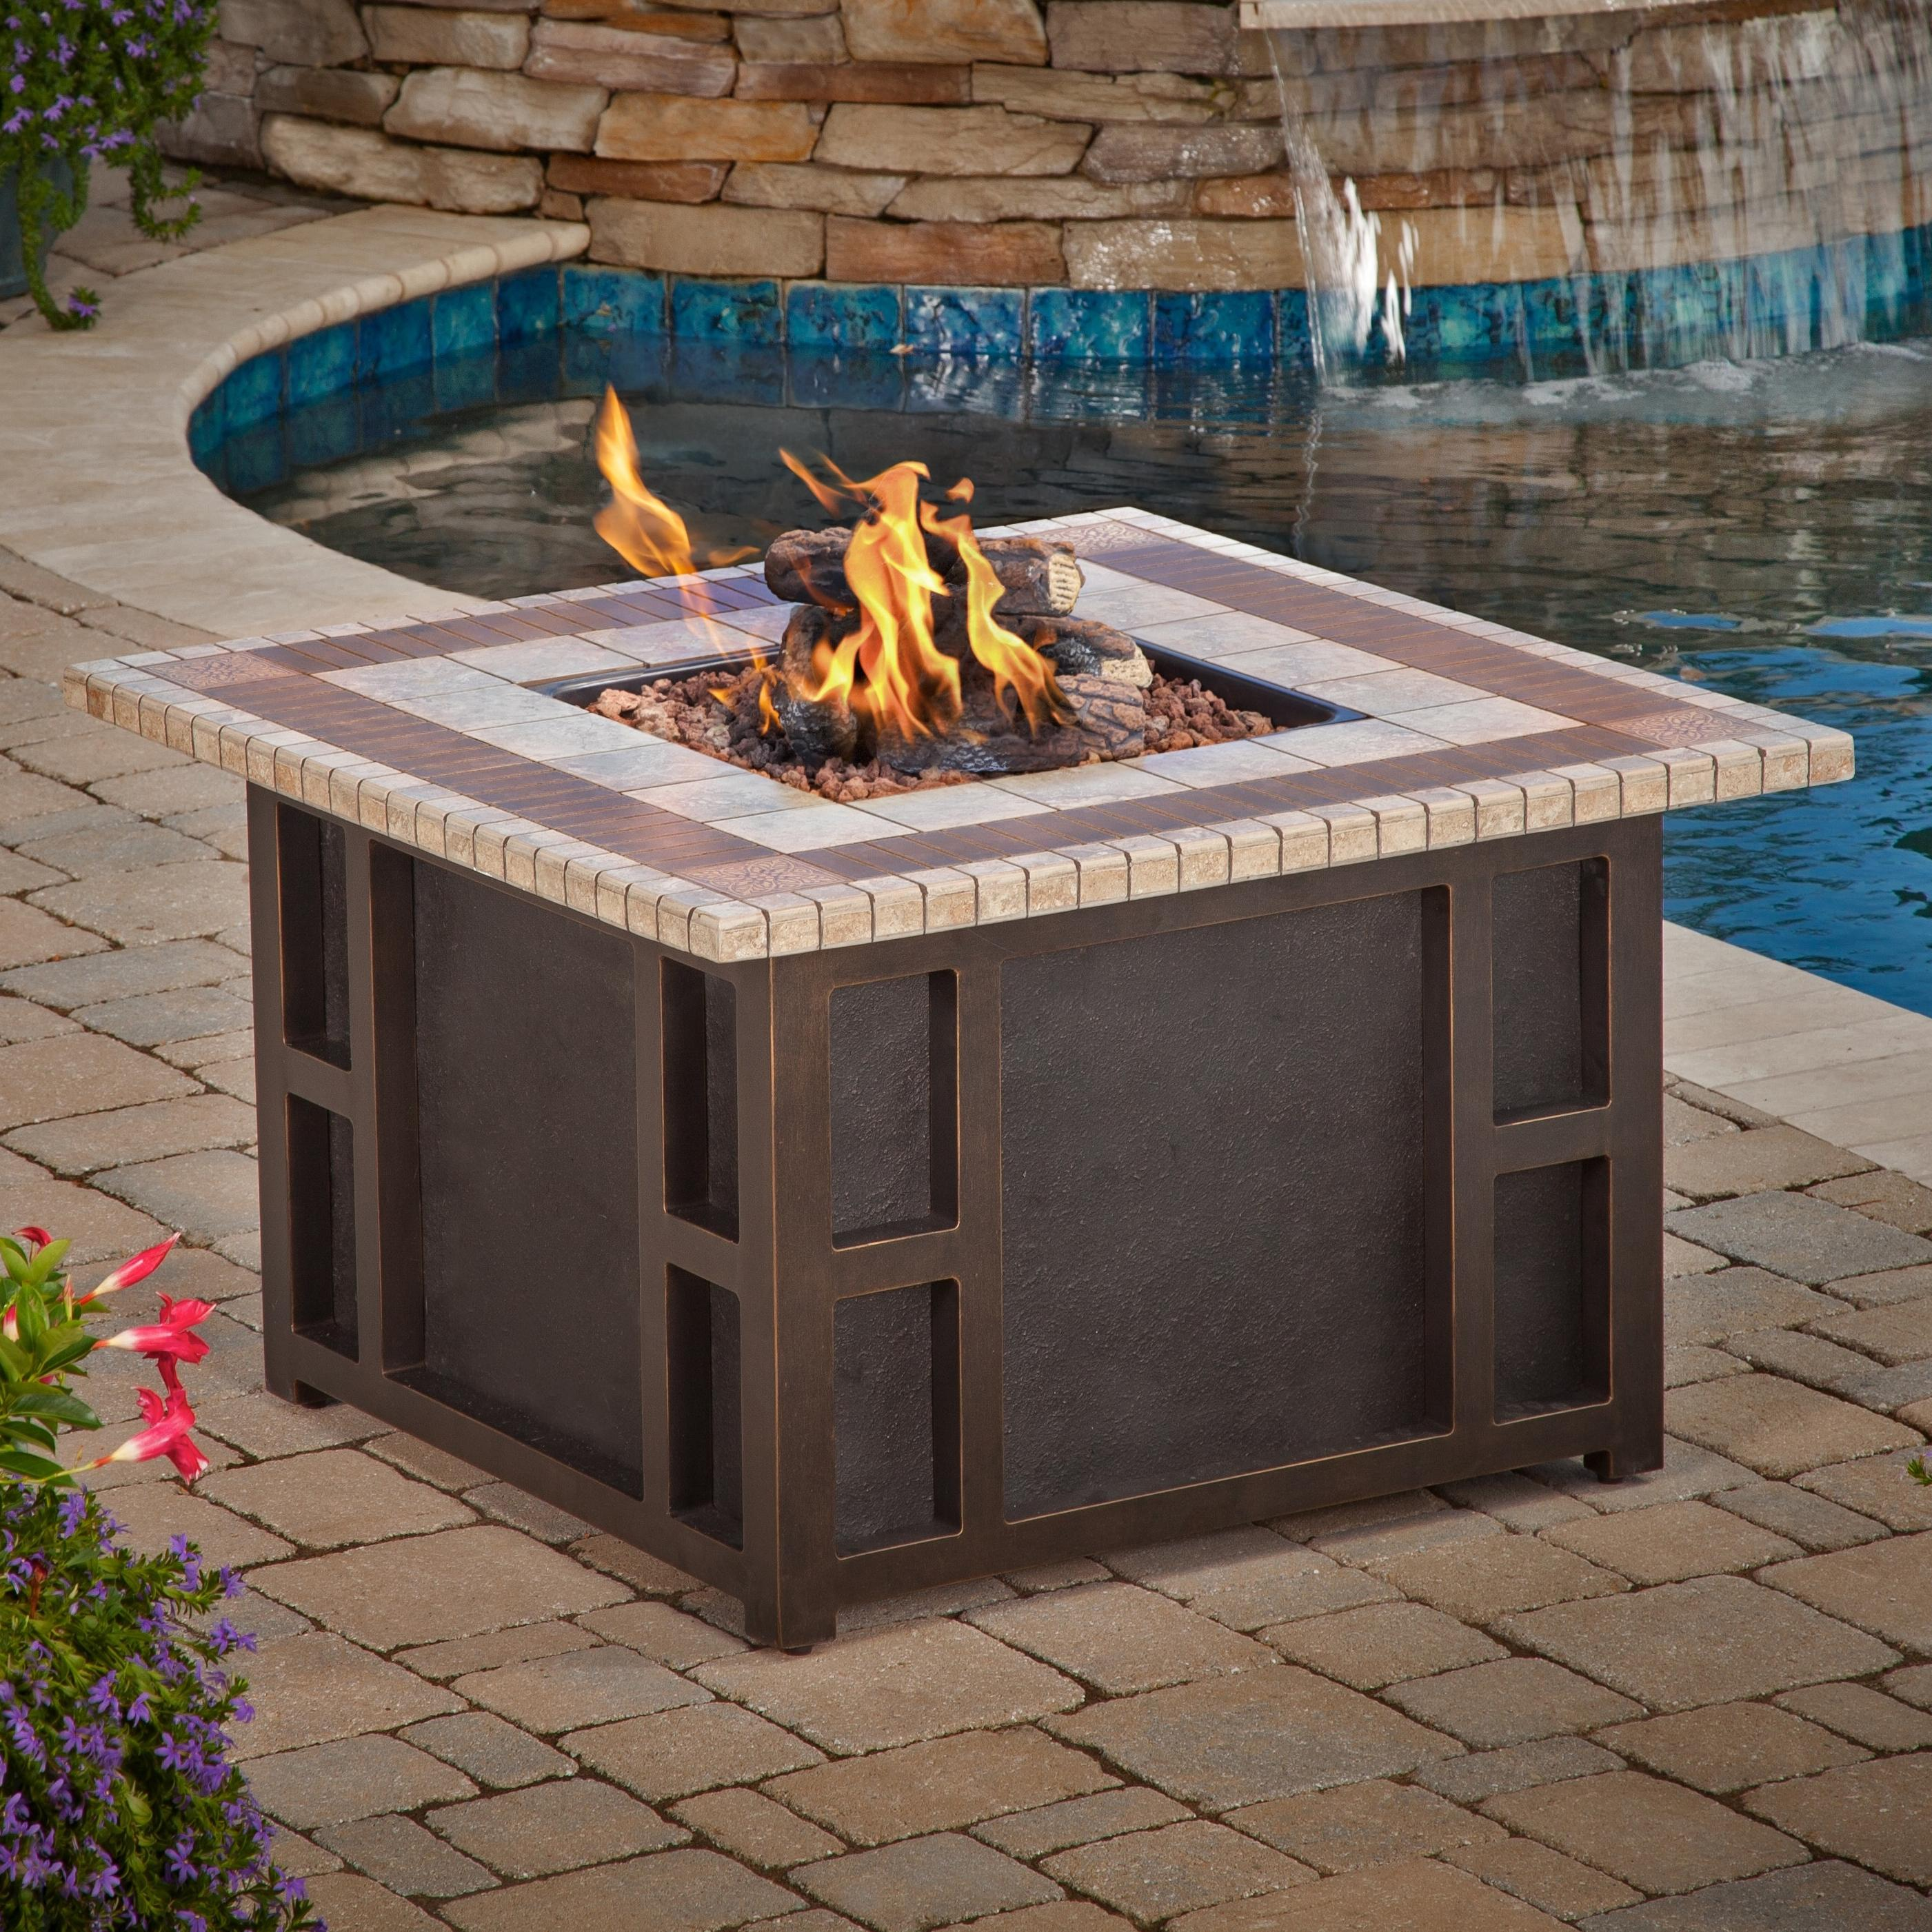 Agio Aurora Firepit Square Aluminum Frame Gas Fire Pit With Porcelain Top